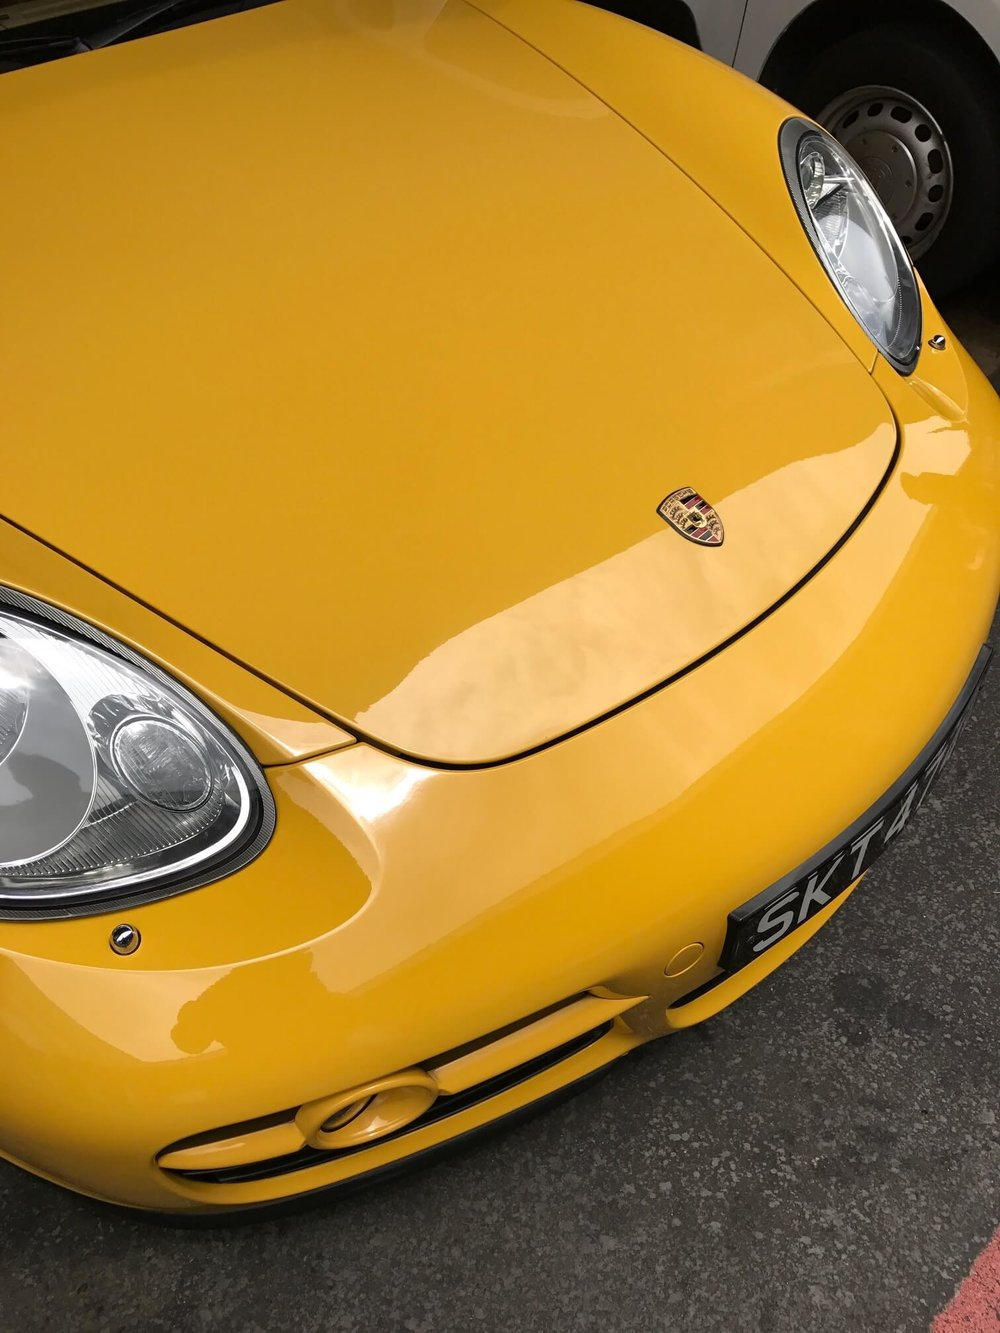 Porsche Cayman Bumper Spray Paint